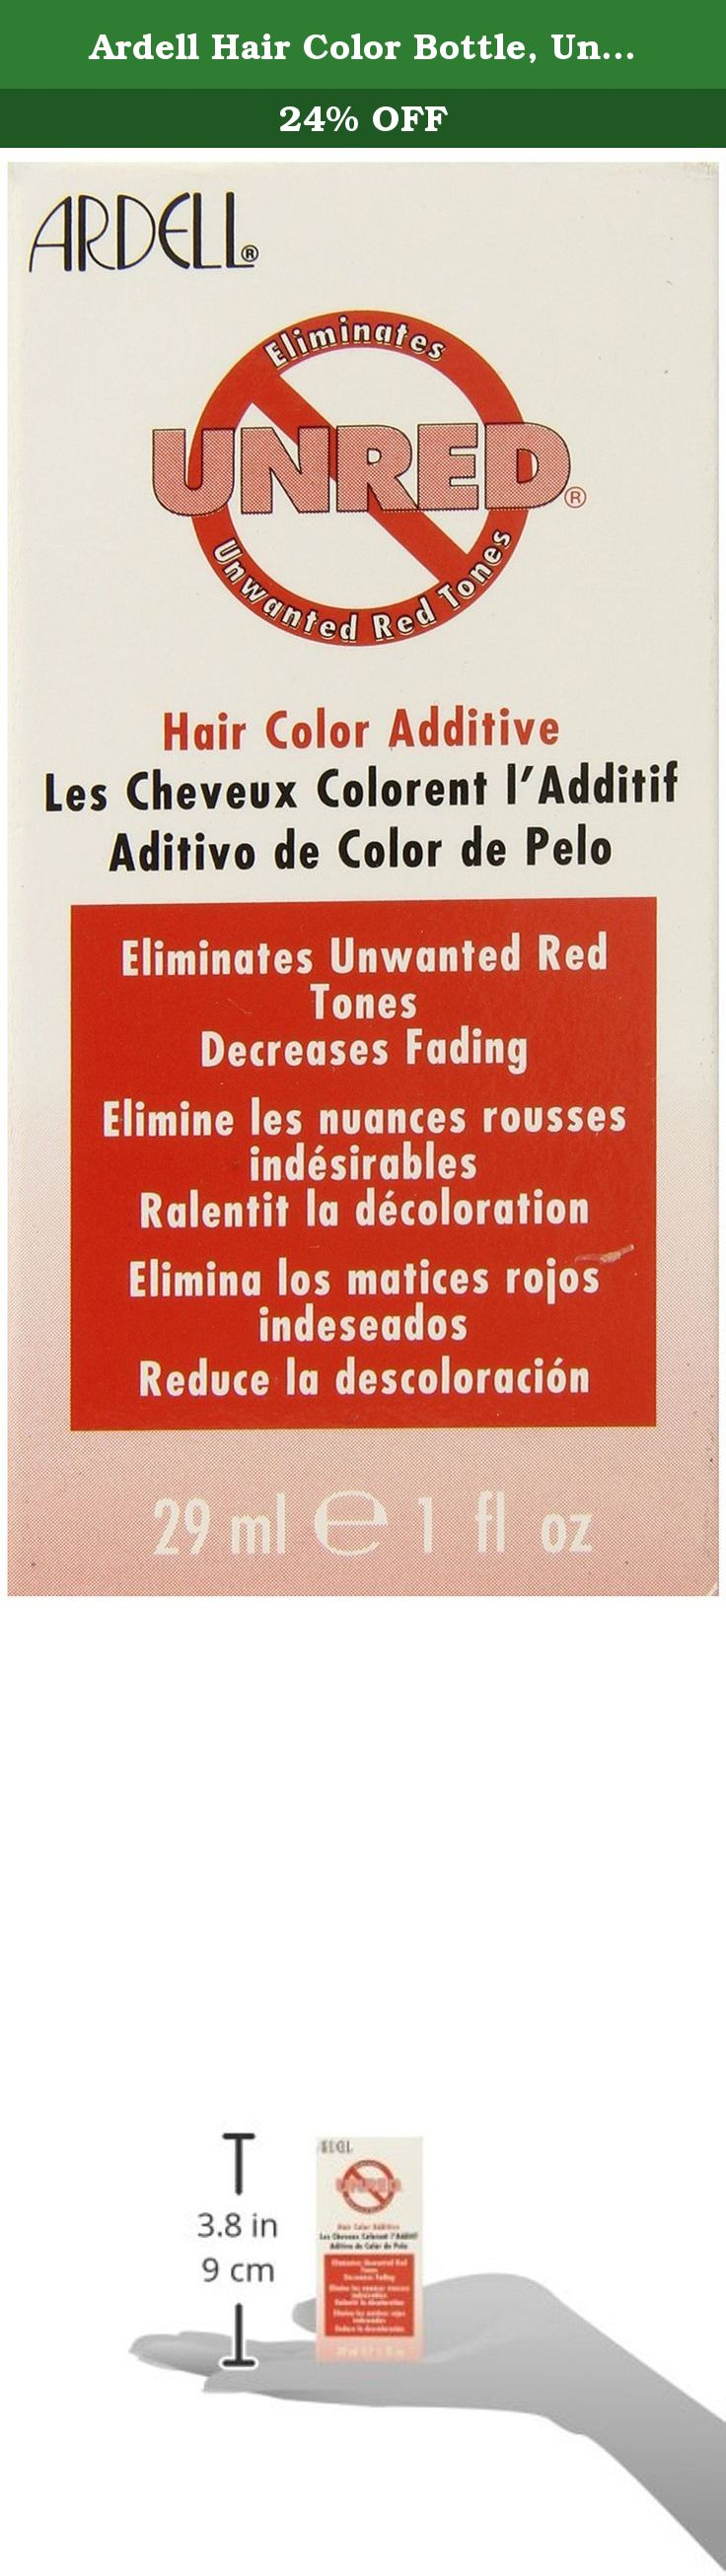 Ardell Hair Color Bottle Unred 1 Ounce Eliminates Unwanted Red